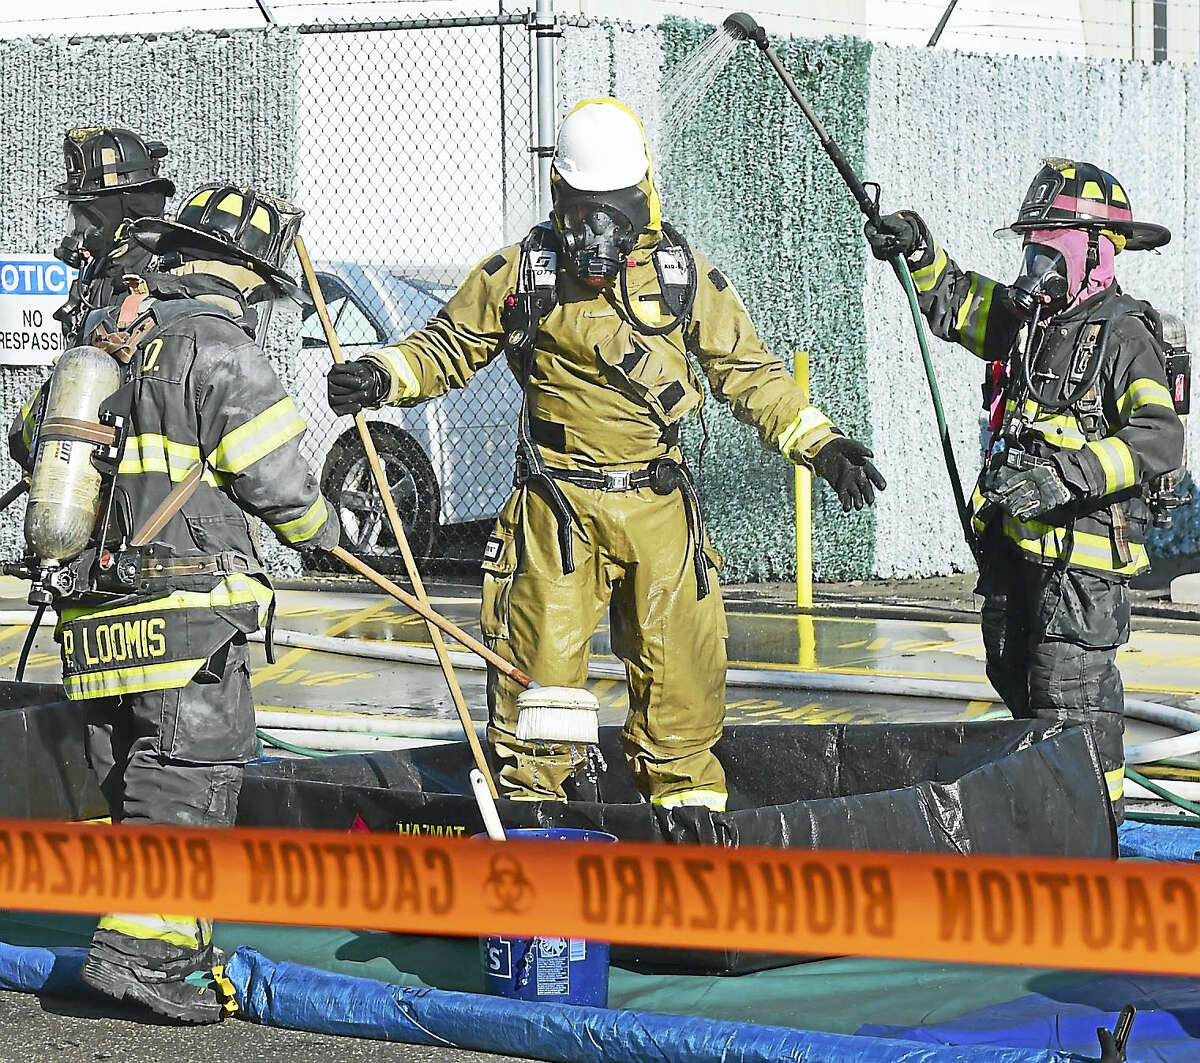 A case of chemical irritant ruptured as an explosion rocked the area around 73 Welton St. and State Street in the East Rock Neighborhood in New Haven at the New Haven Chlor-Alkali LLC, formerly the H. Krevit Co. Dec. 22, 2016.,